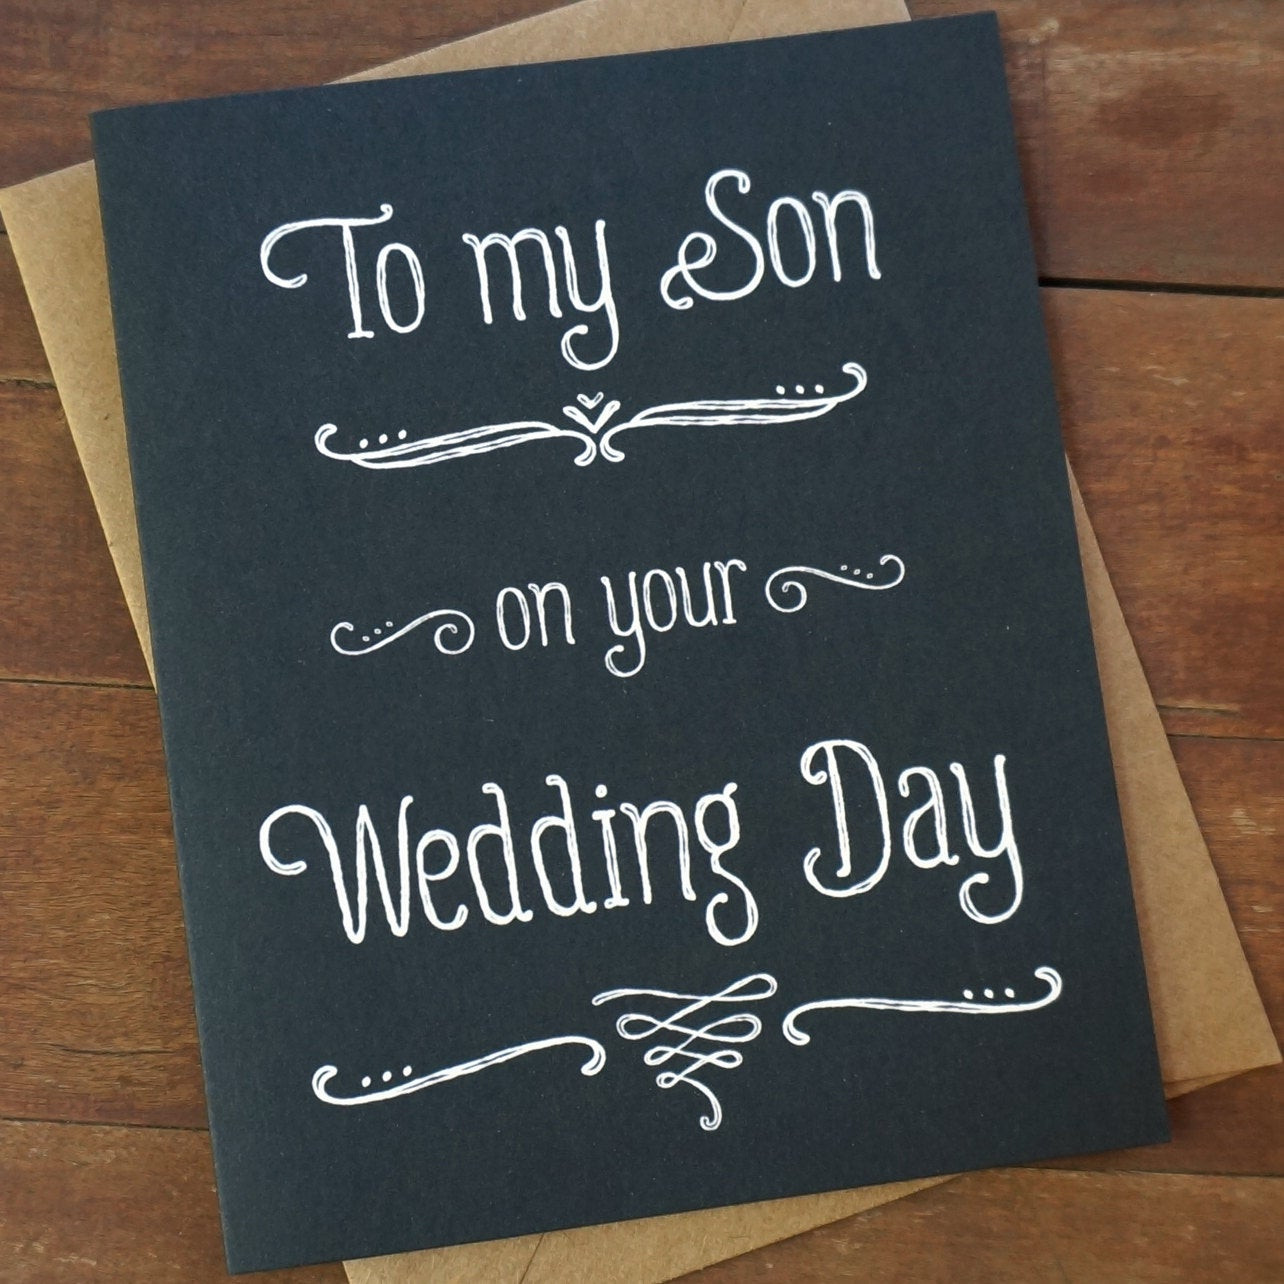 Best ideas about Wedding Gift Ideas For Son . Save or Pin Son Wedding Gift for Son in law Gift To My Son Your Now.